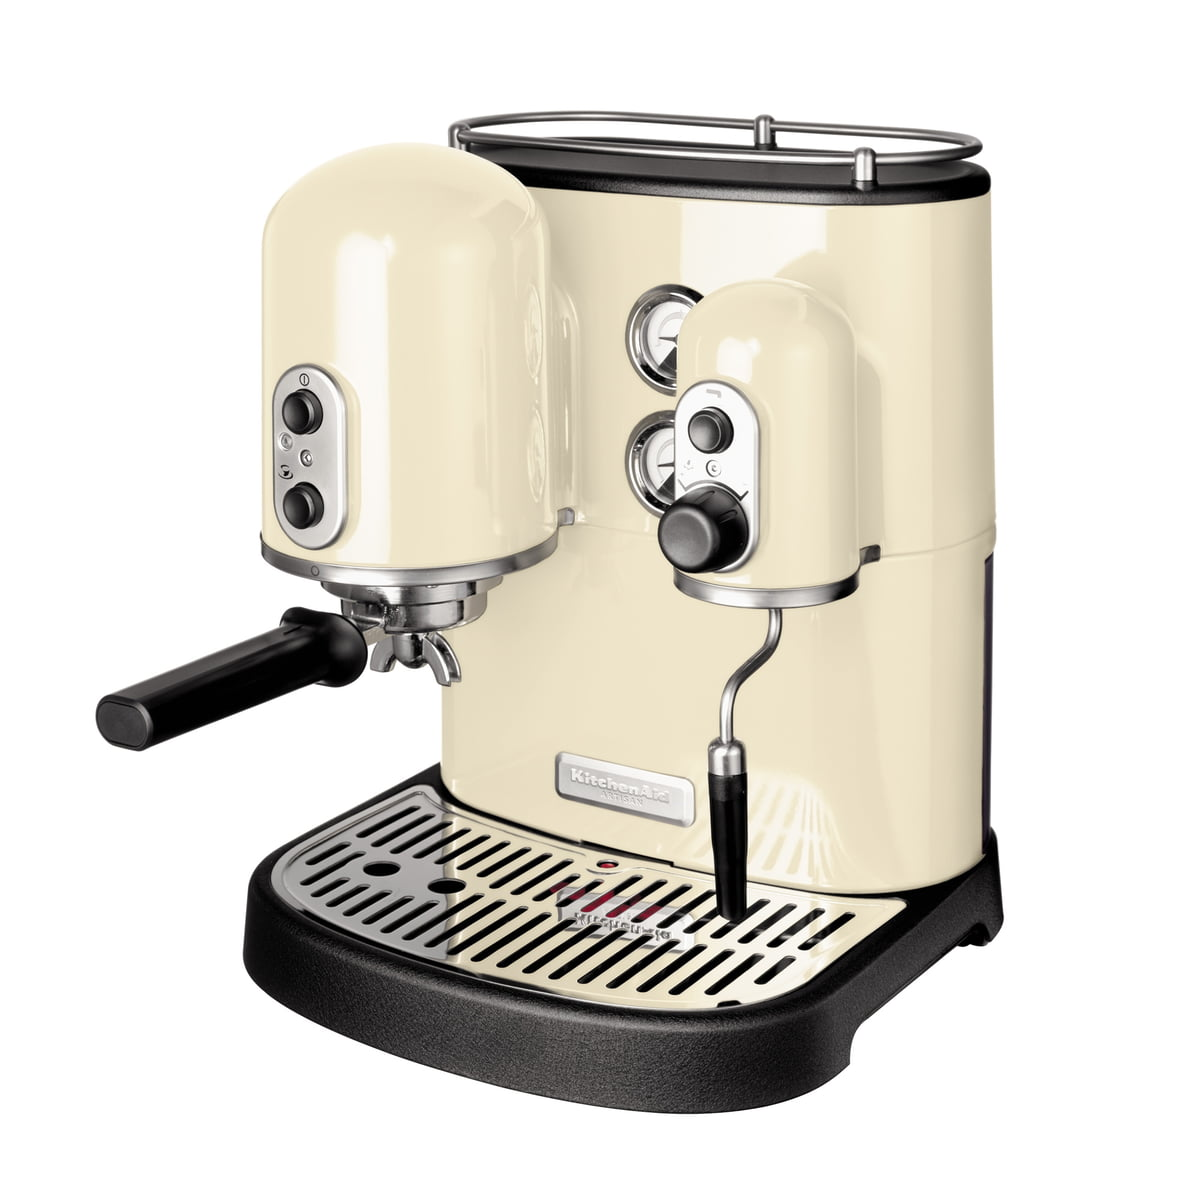 Brilliant KitchenAid Espresso Machine 1200 x 1200 · 166 kB · jpeg